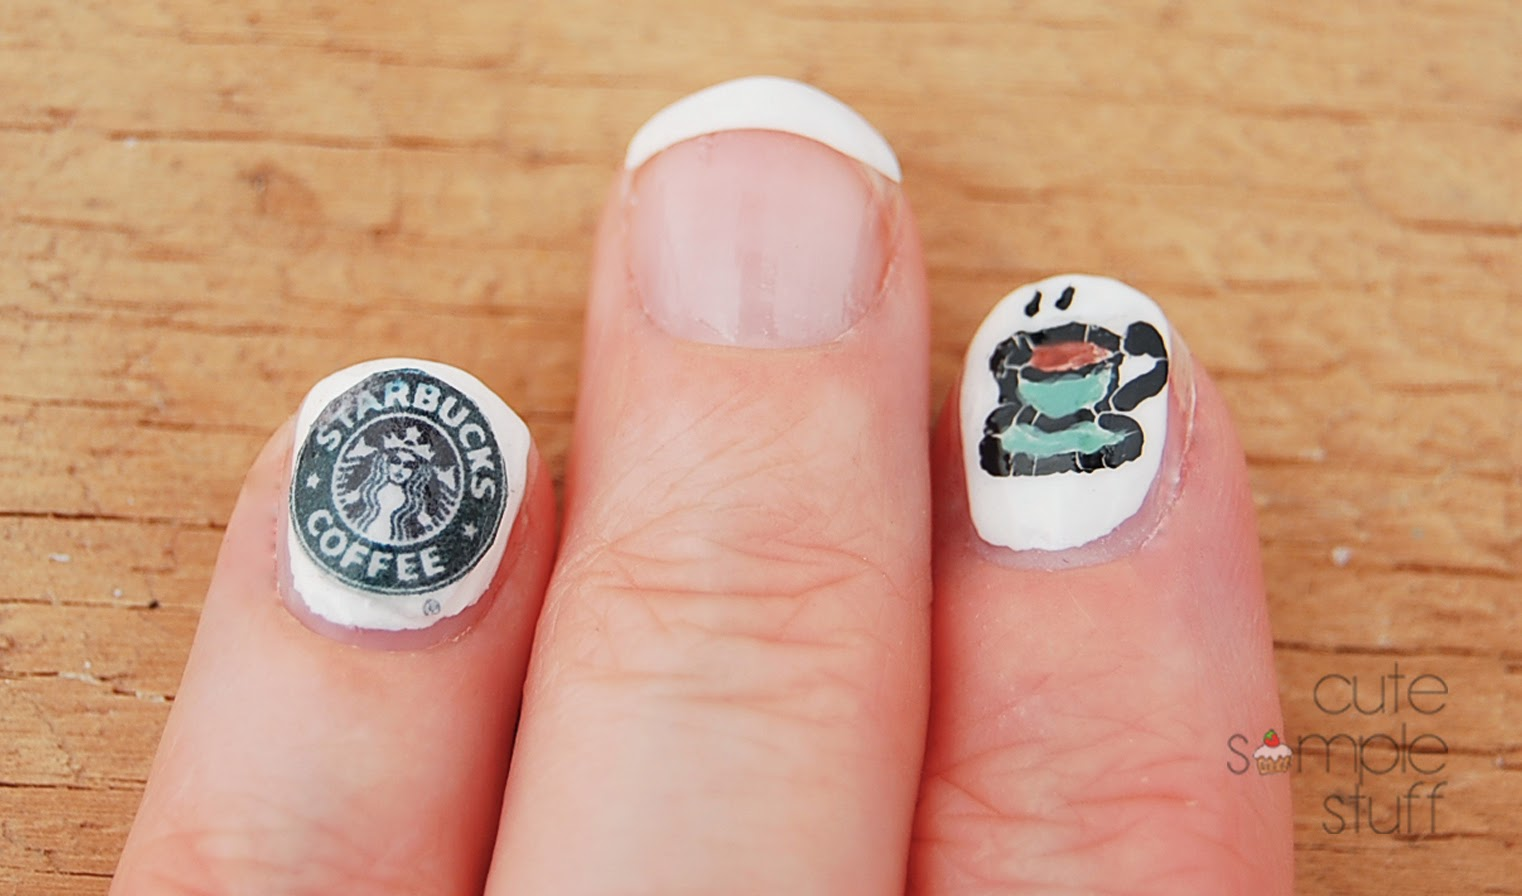 Cute Simple Things Monday Mani Starbucks Coffee Inspired Nails 2